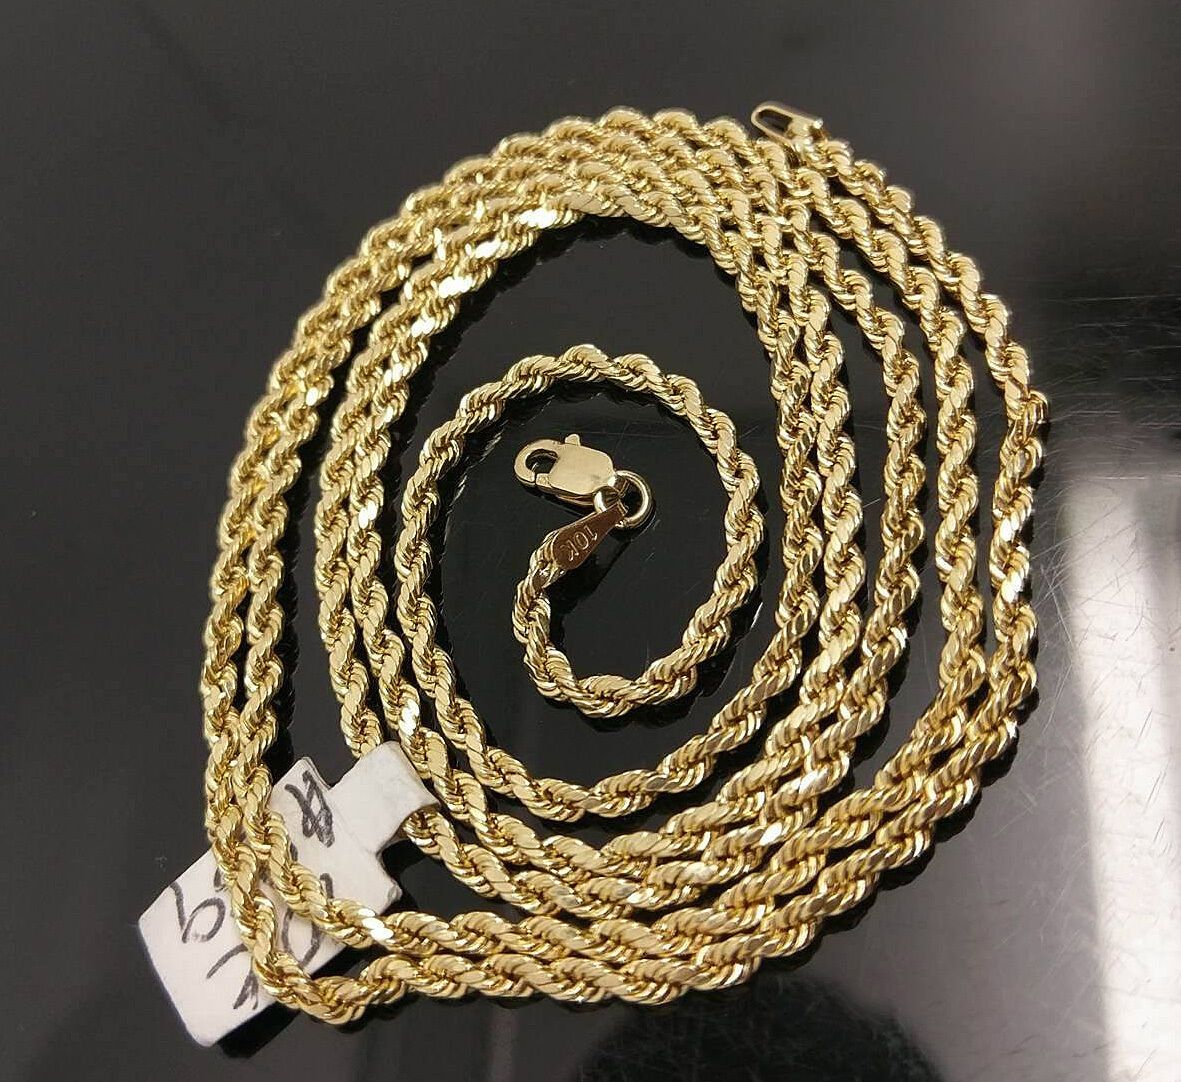 10k Gold Chain Solid Men Women Real Rope 3mm 18 20 22 24 26 28 Inch Real In 2021 Gold Chains For Men 10k Gold Chain Gold Chains